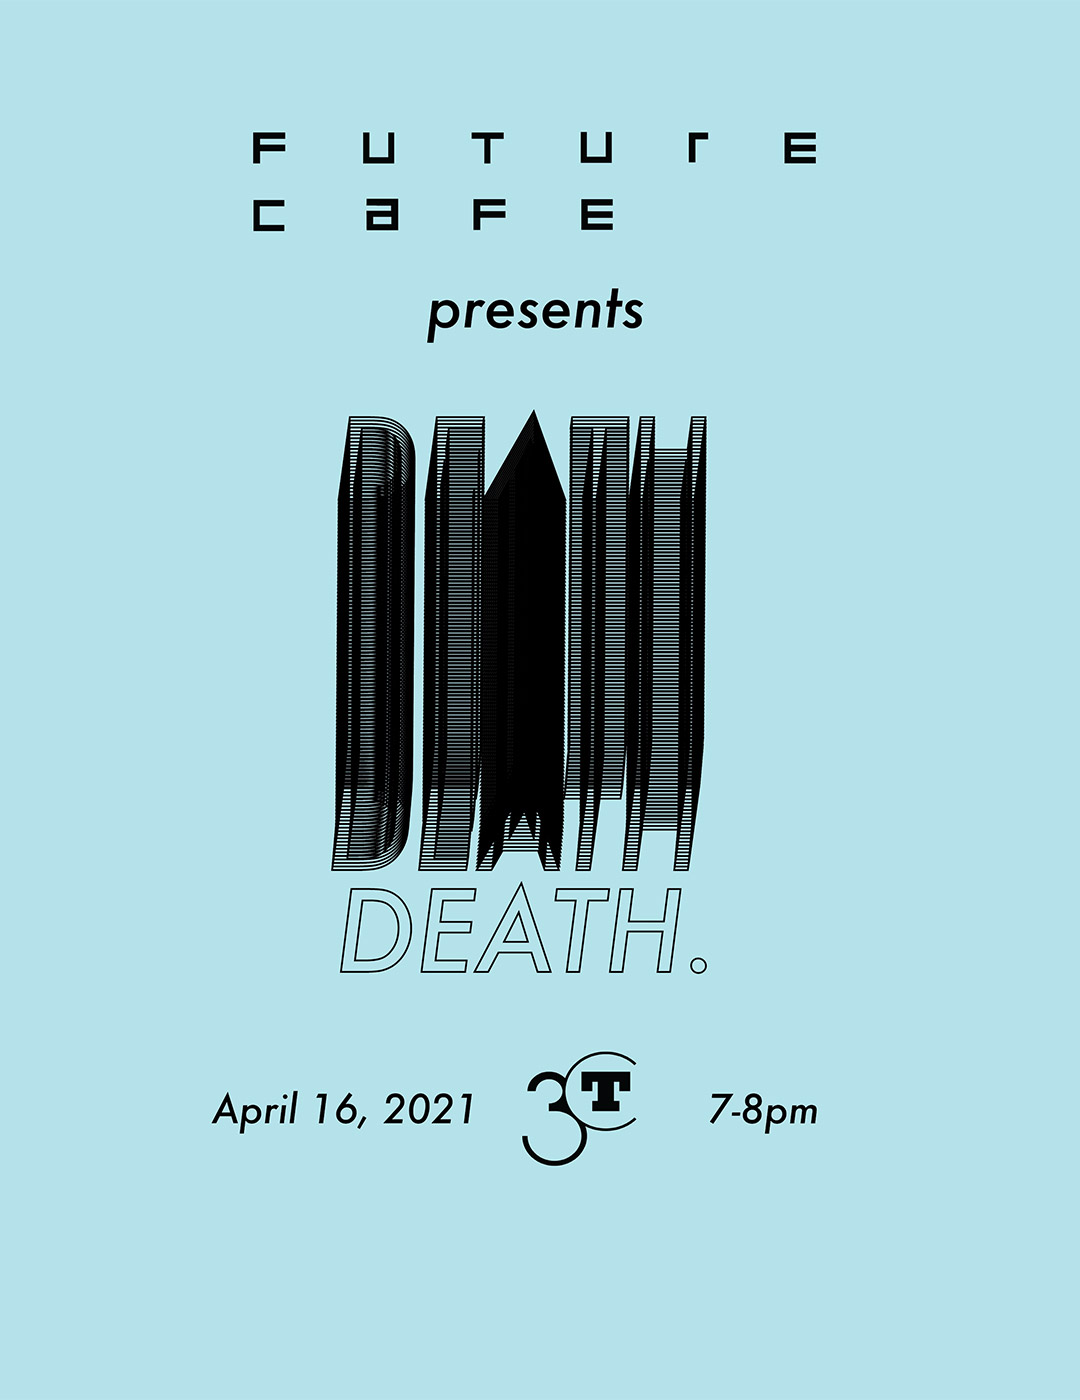 Event flyer with black text on a light blue background